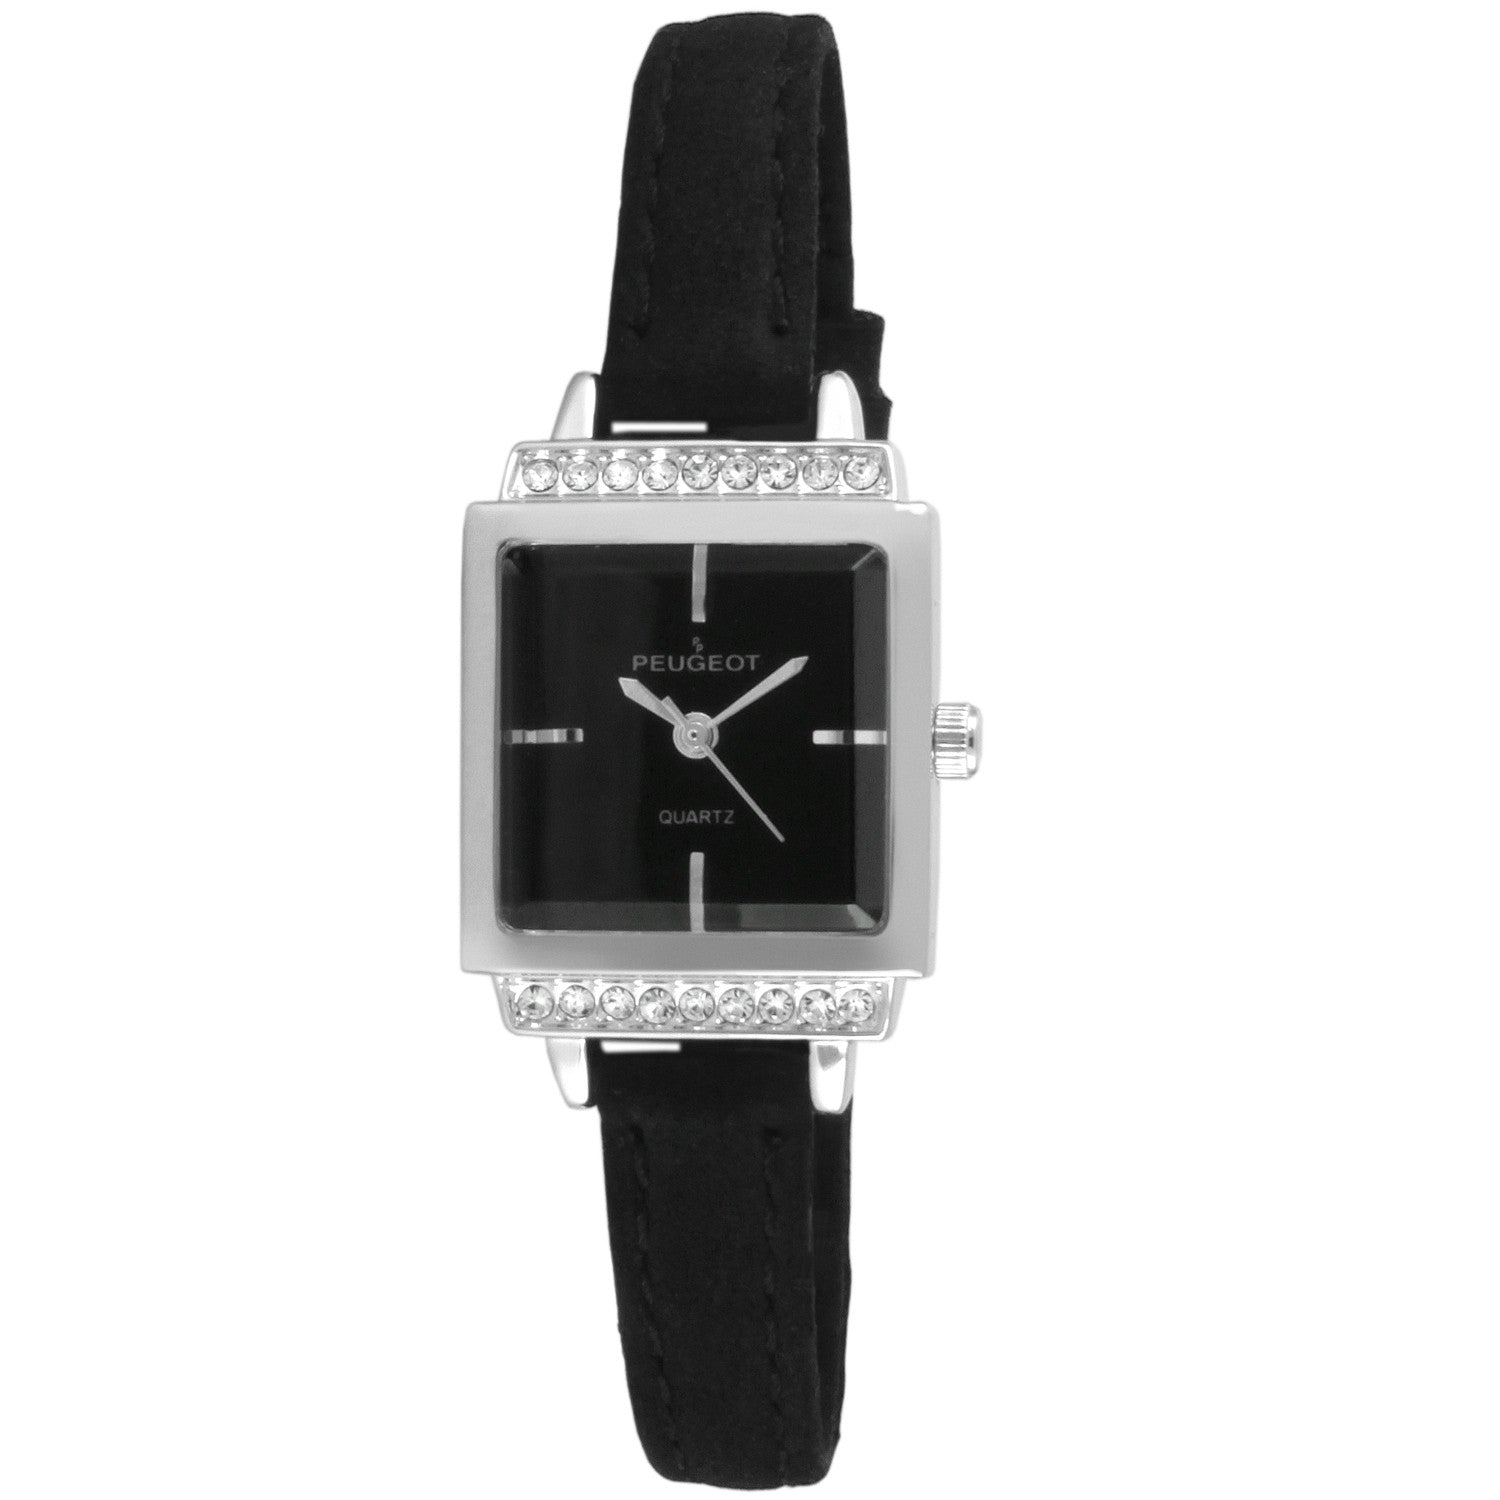 Petite Square Suede Leather Watch Black